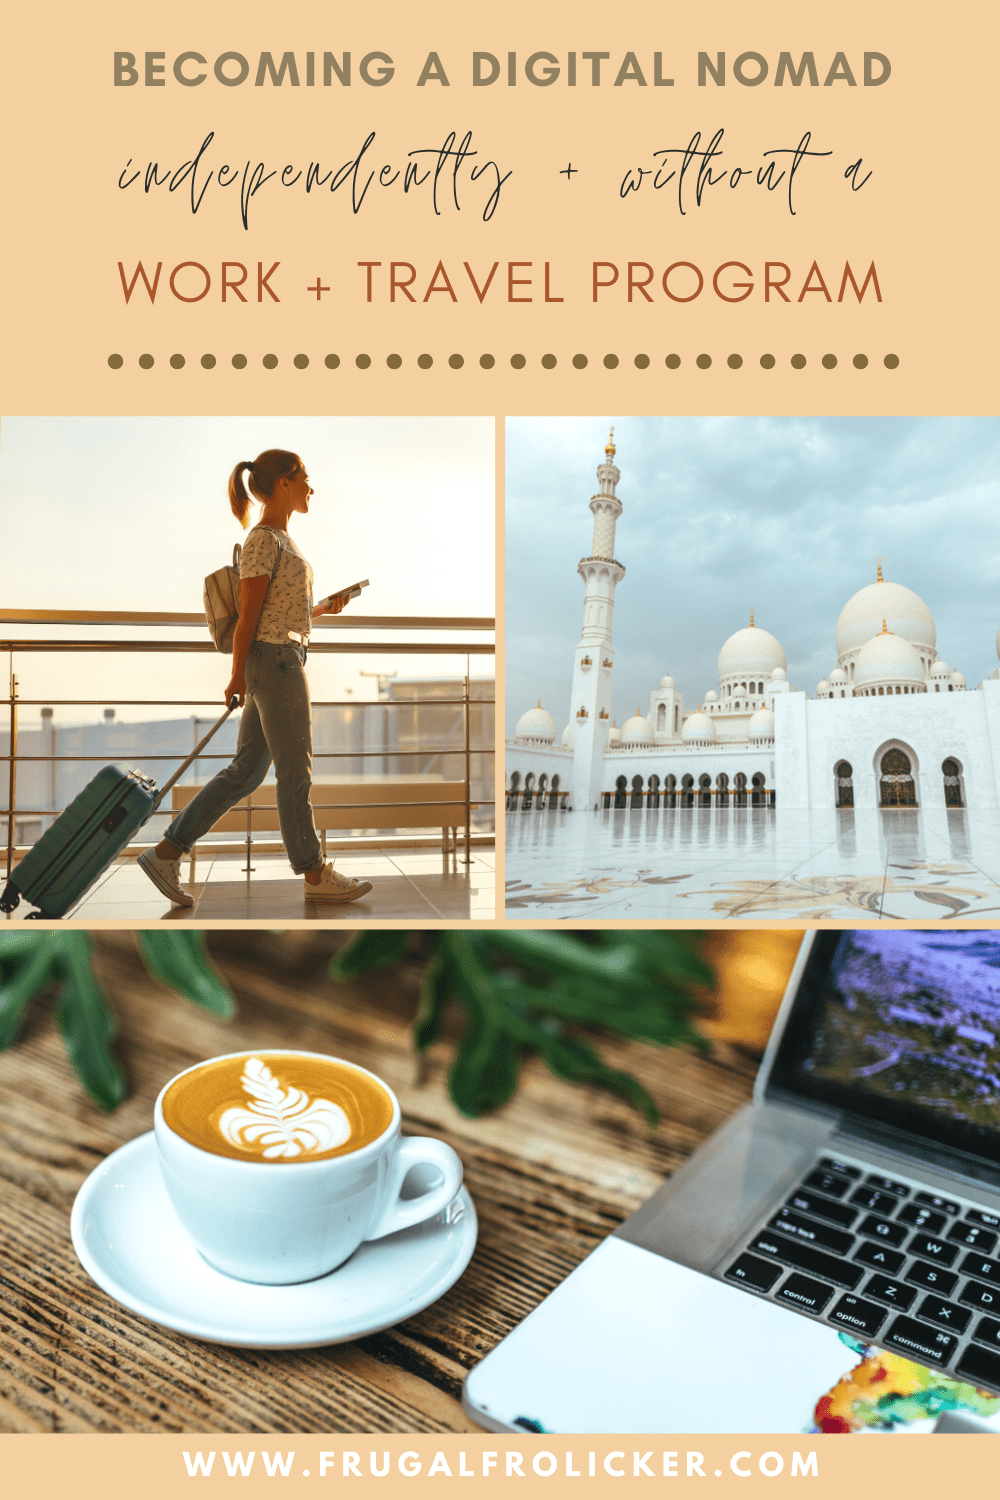 Why You Don't Need A Work And Travel Program Like Remote Year To Become A Digital Nomad